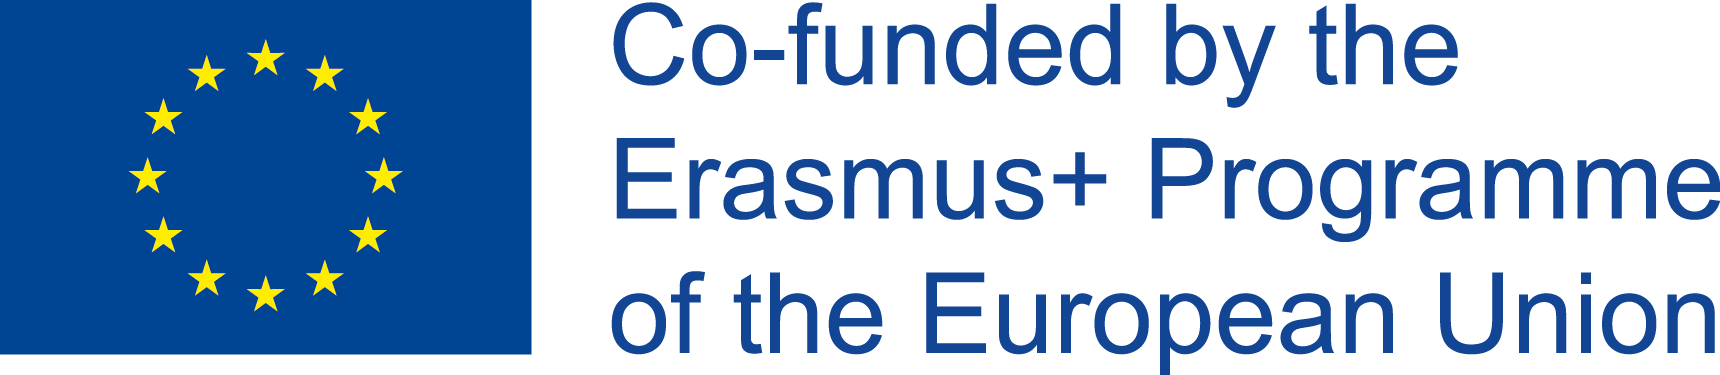 EU logo with a caption that reads 'Co-funded by the Erasmus+ Programme of the European Union